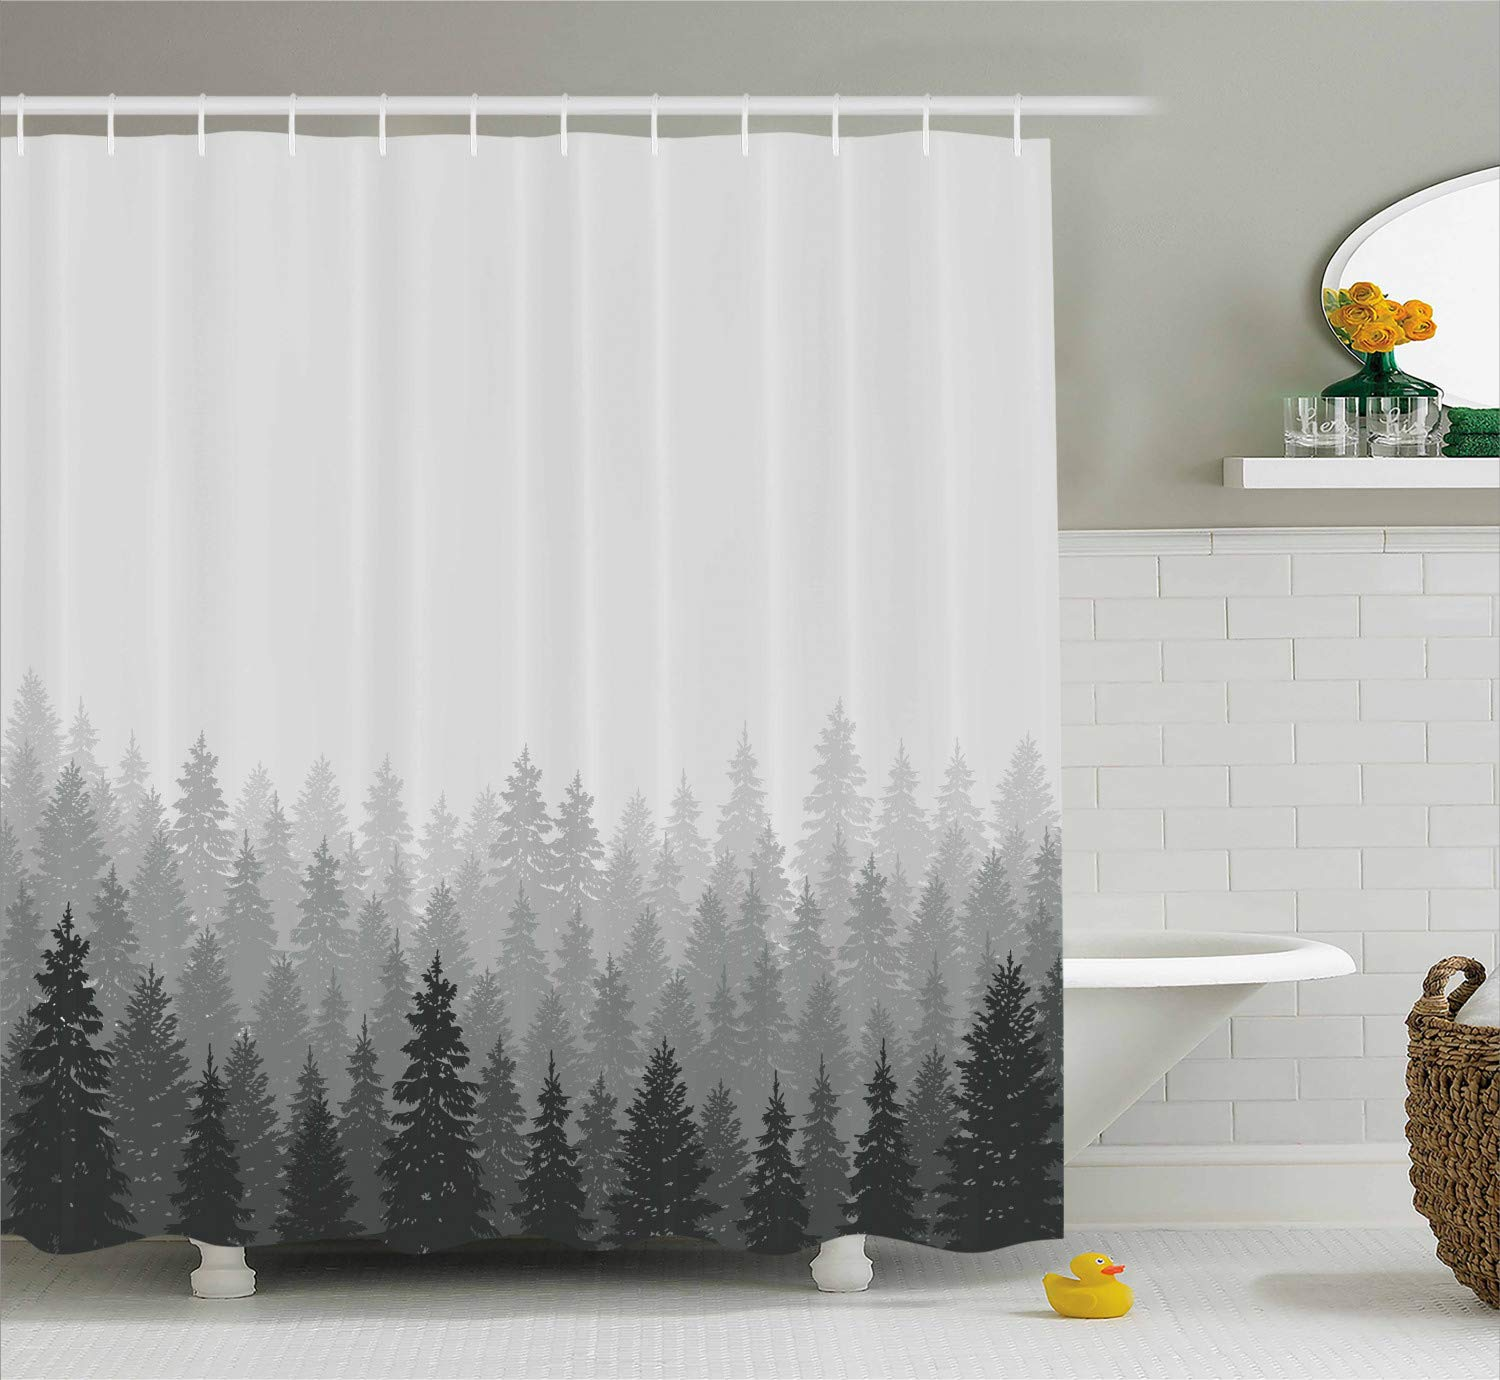 Ambesonne Forest Shower Curtain, Wilderness Pattern with Many Trees Nature Panorama Monochrome Woods, Cloth Fabric Bathroom Decor Set with Hooks, 84 Inches Extra Long, Reseda Grey